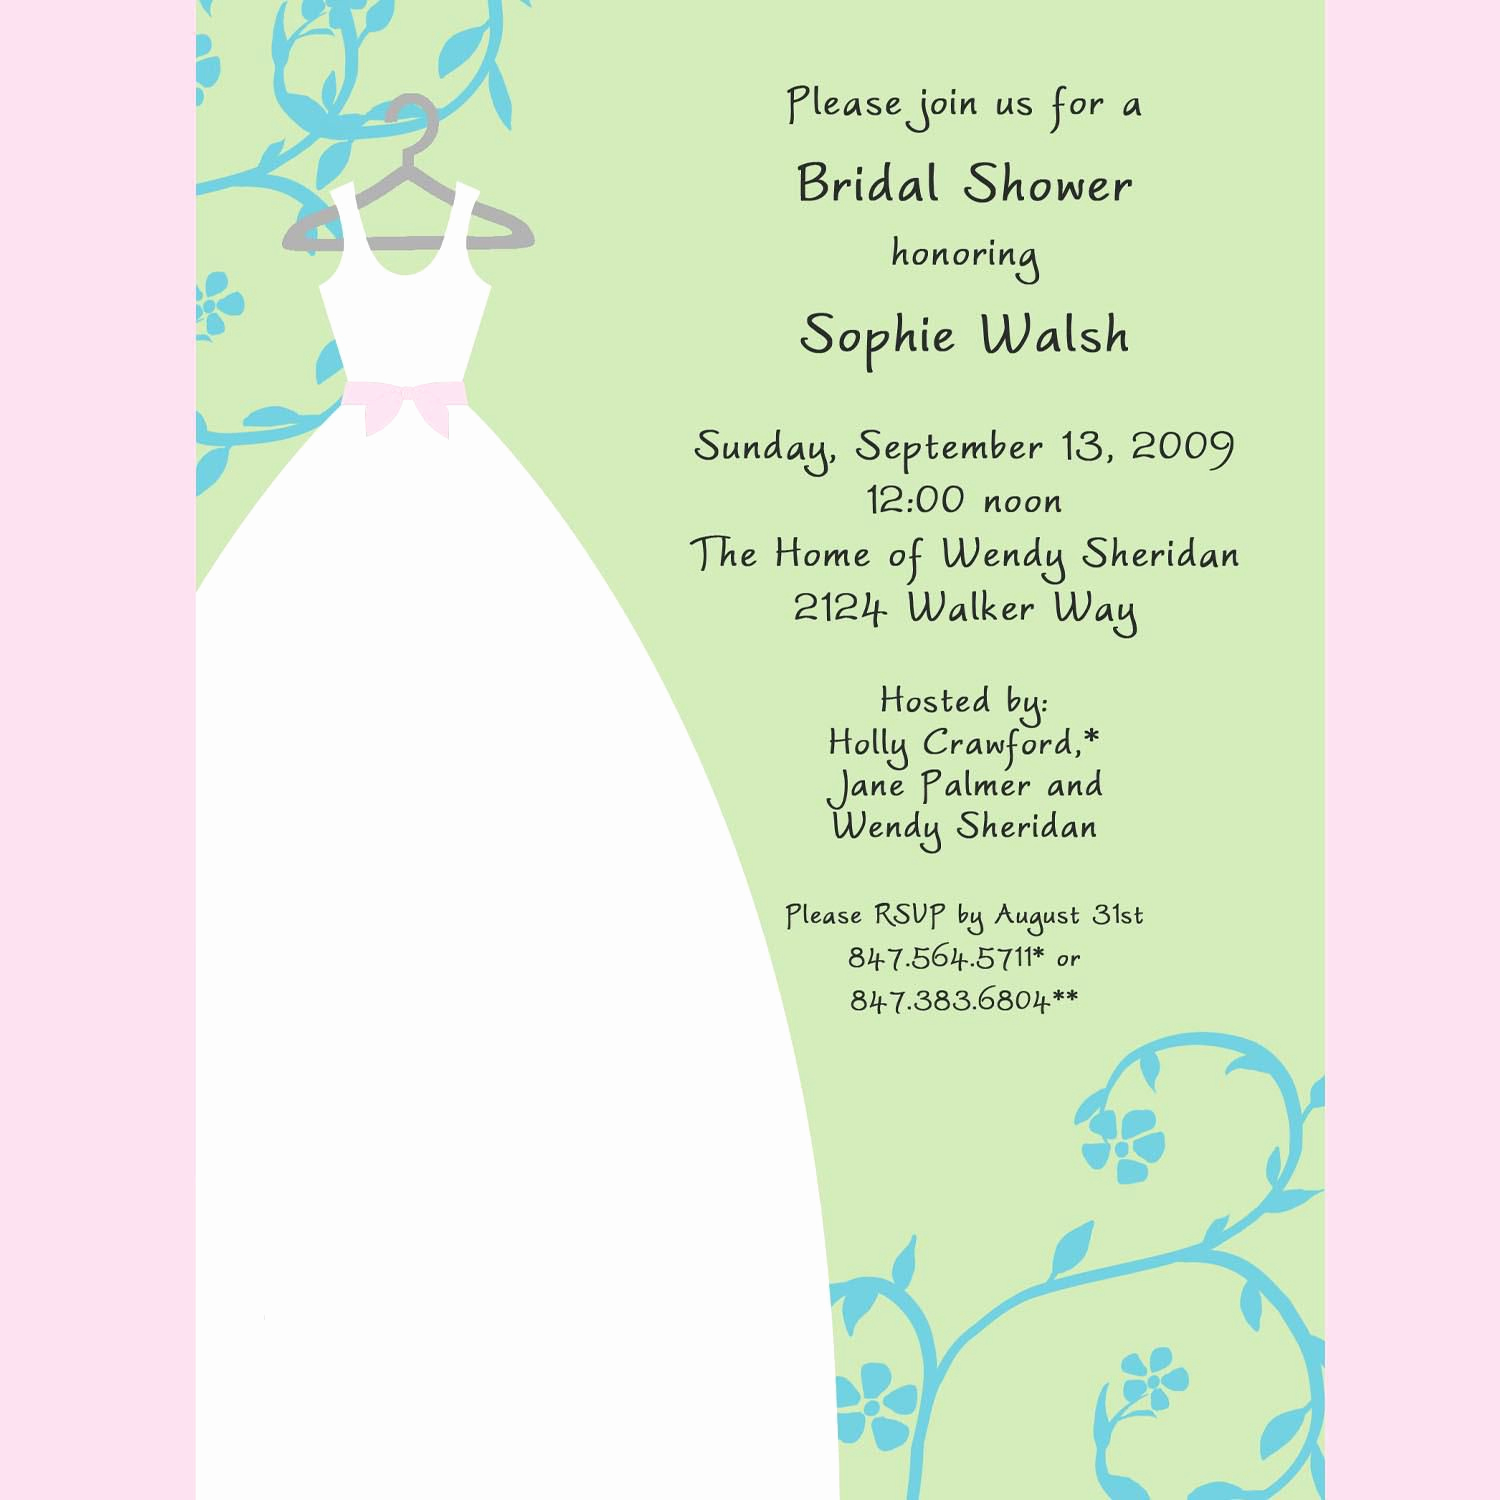 Diy Bridal Shower Invitation Templates Unique Free Bridal Shower Invitation Templates Free Around the